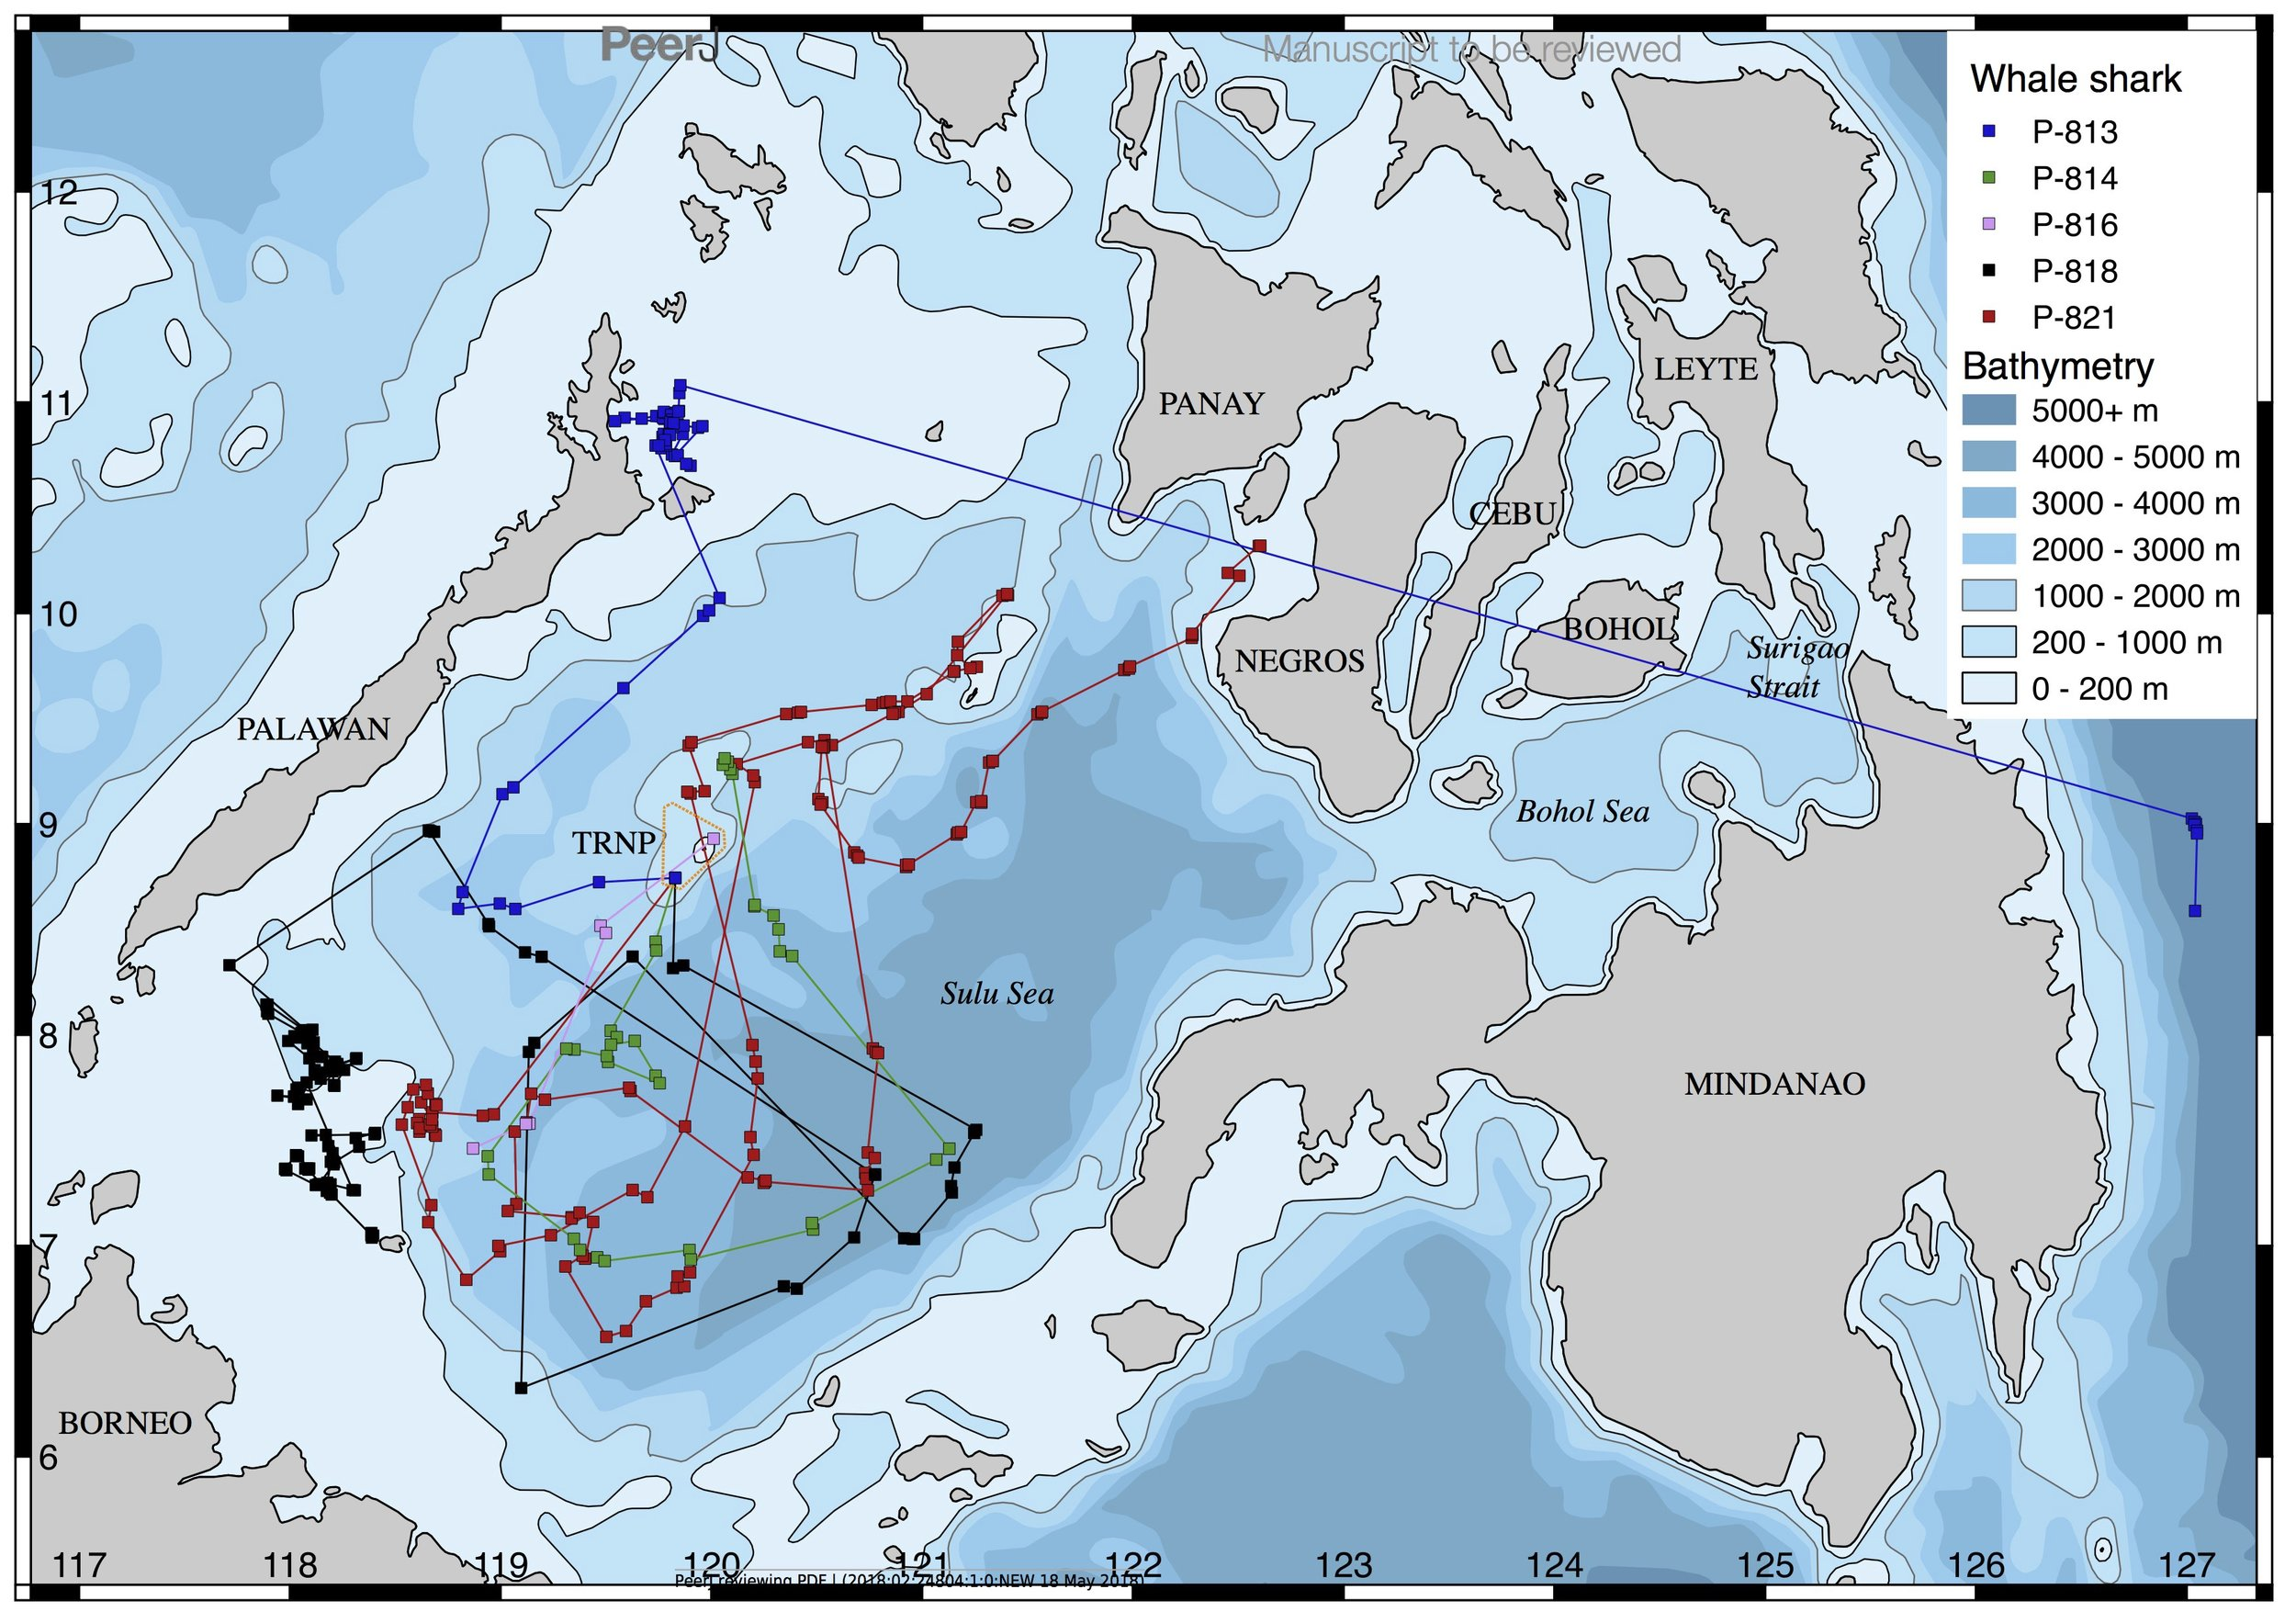 Satellite tracks of whale sharks tagged in TRNP.